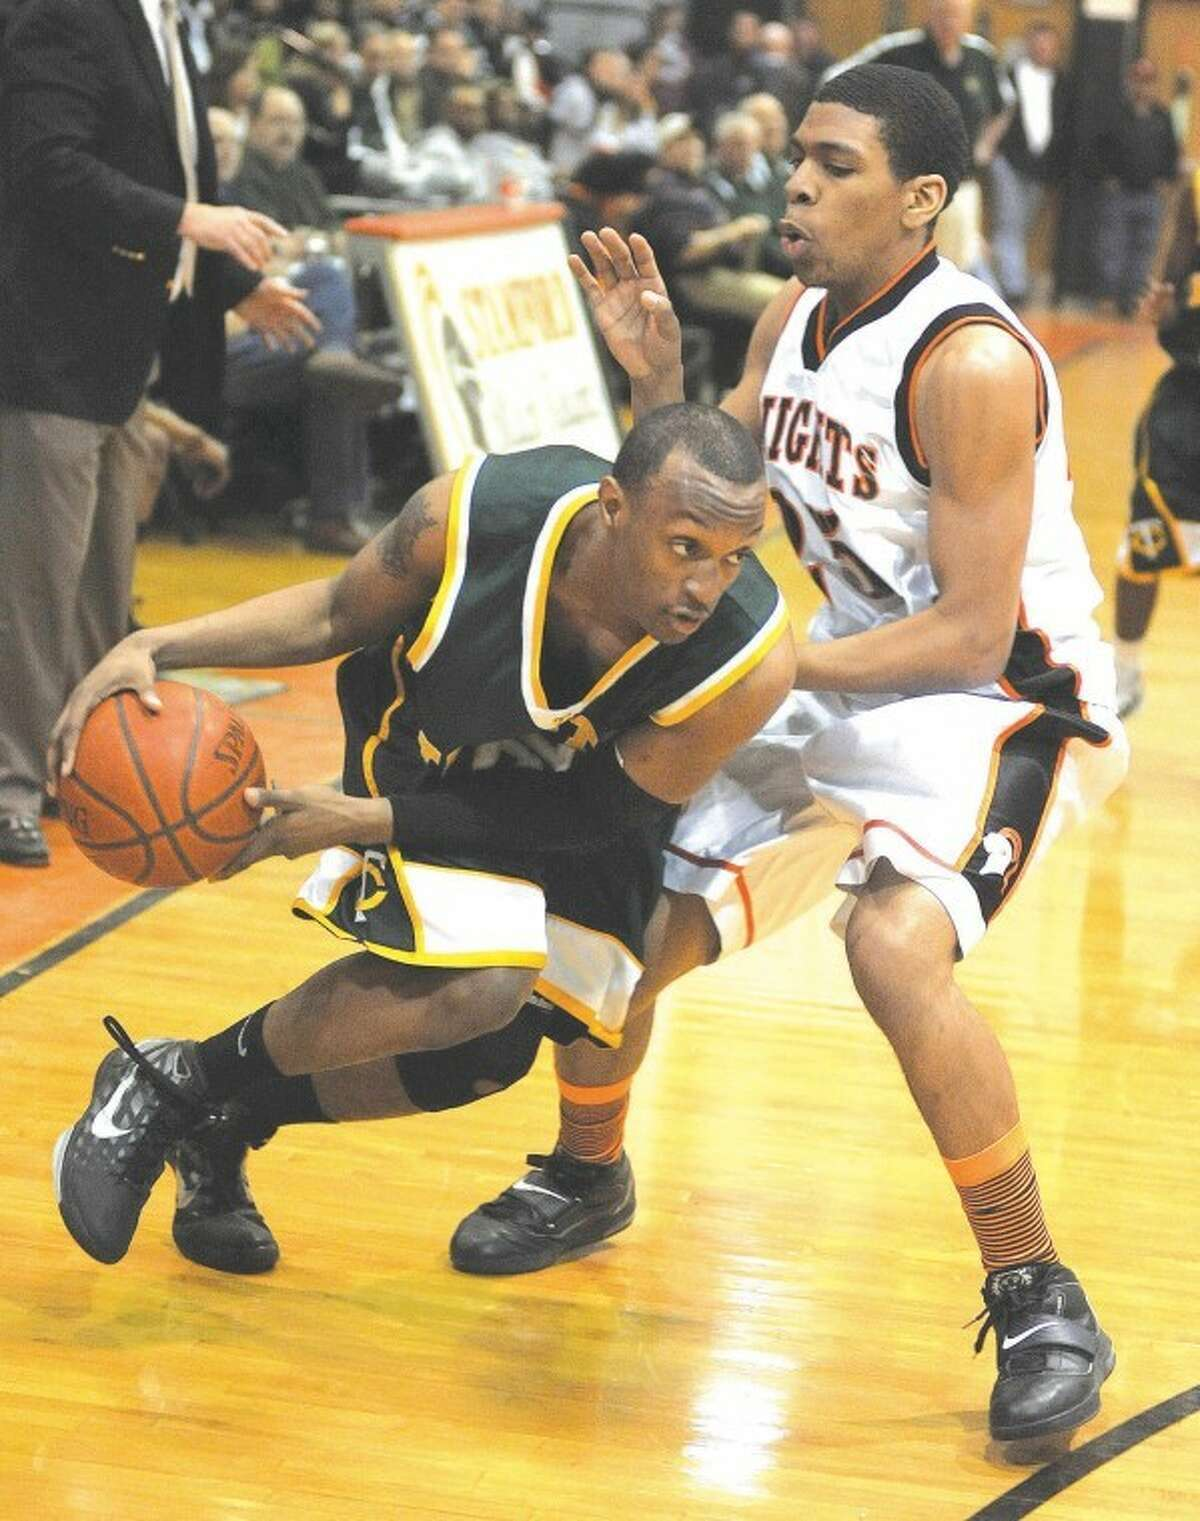 Hour file photo/John Nash - Former Stamford High basketball player Terrance Ditimi, right, seen here guarding a Trinity Catholic player, has made the roster of the University of Connecticut men's basketball team as a walk-on.